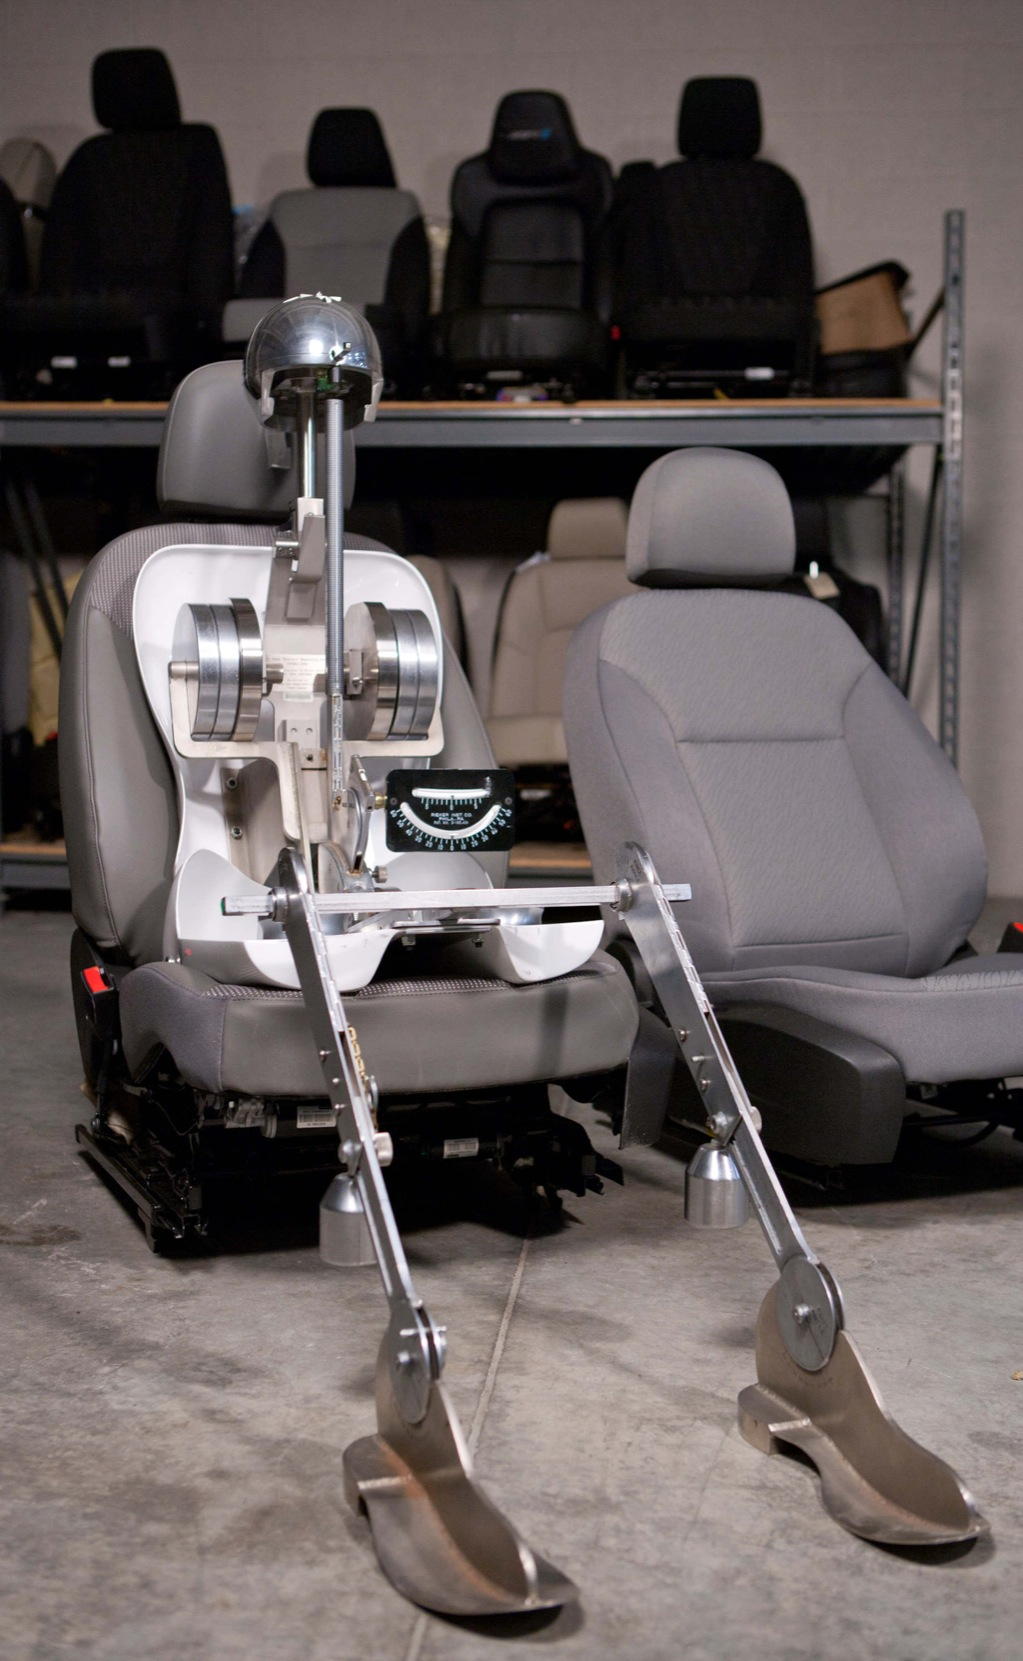 No, that's not the Terminator trying out a new car seat—it's GM's seating mannequin called Oscar.